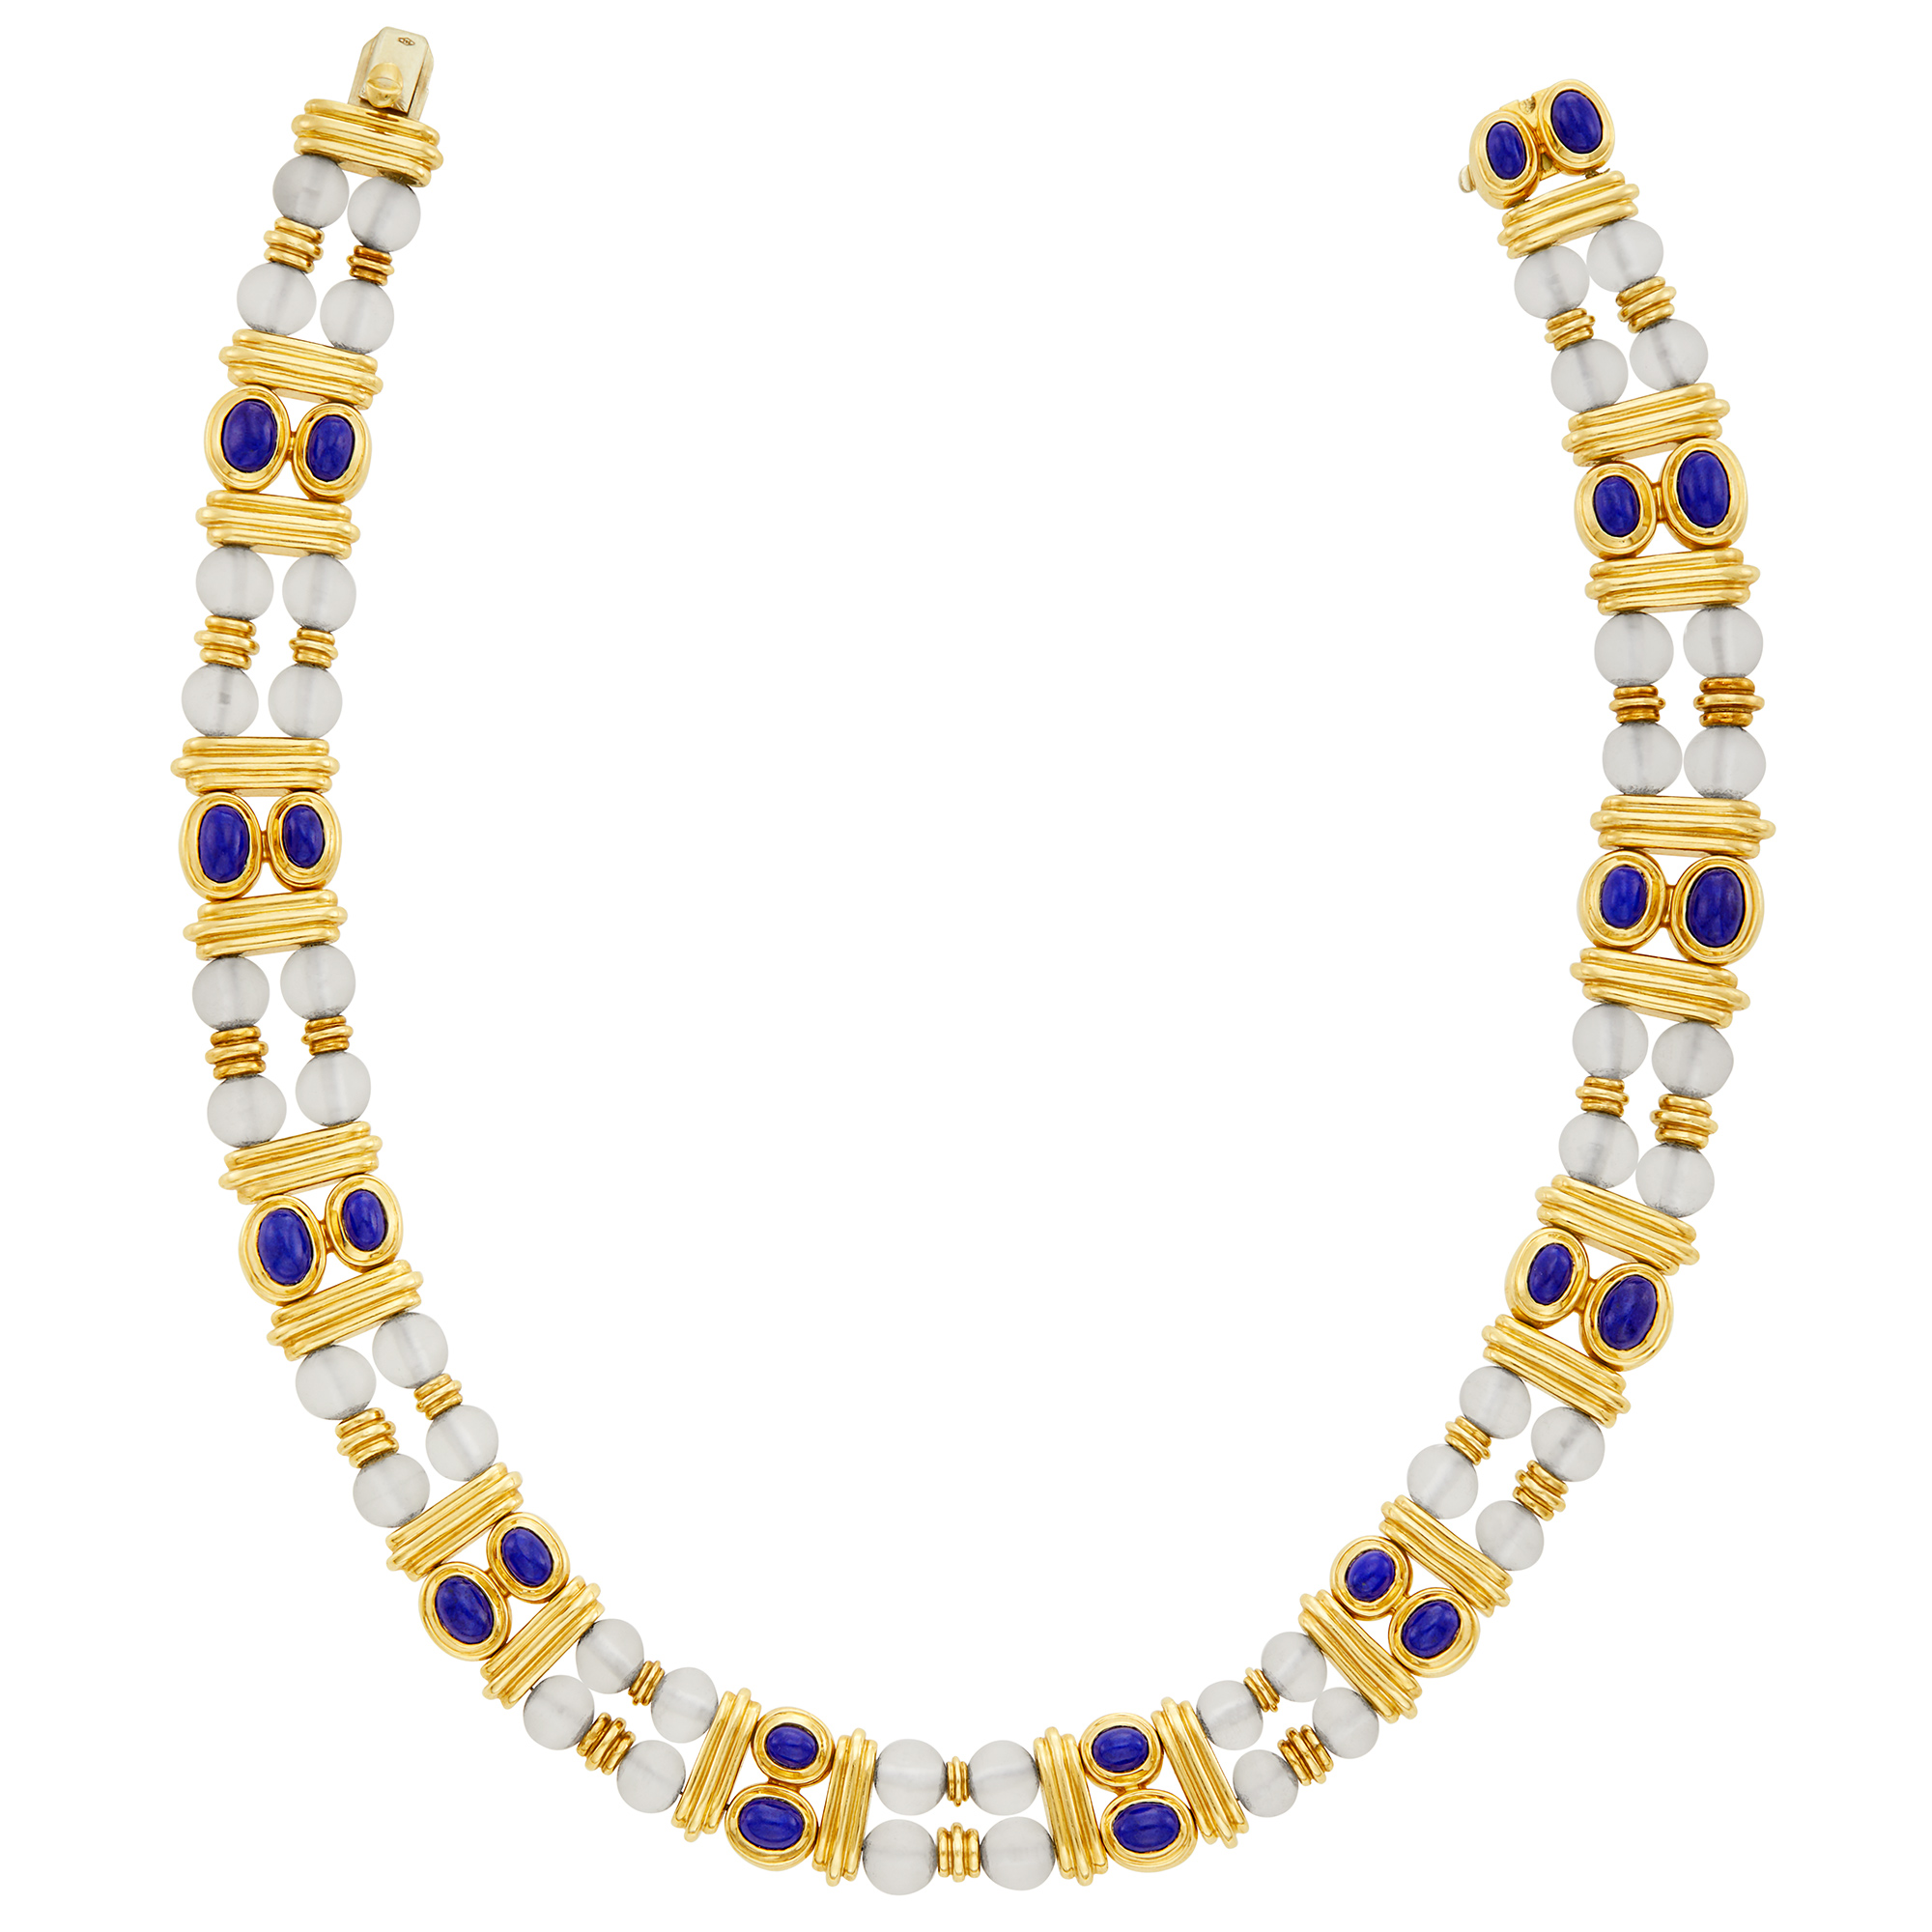 Lot image - Double Strand Gold, Frosted Rock Crystal Bead and Lapis Necklace, Boucheron, France